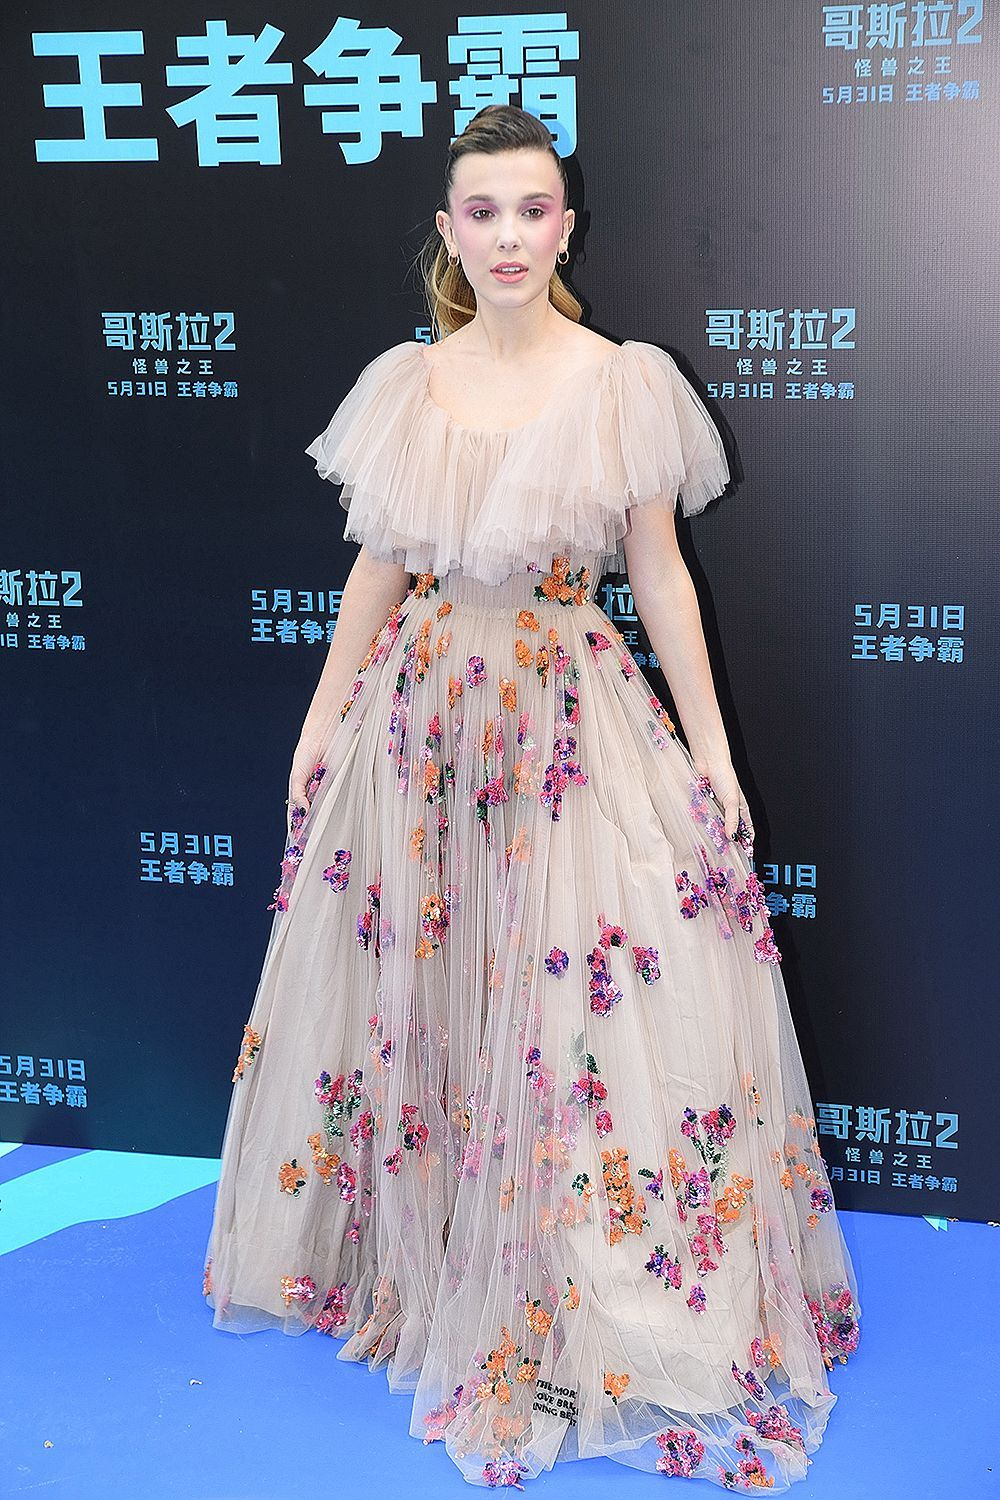 Millie Bobby Brown Pics English Actress And Model Millie Bobby Brown Attends A Premiere Event F In 2020 Millie Bobby Brown Bobby Brown Bobby Brown Stranger Things